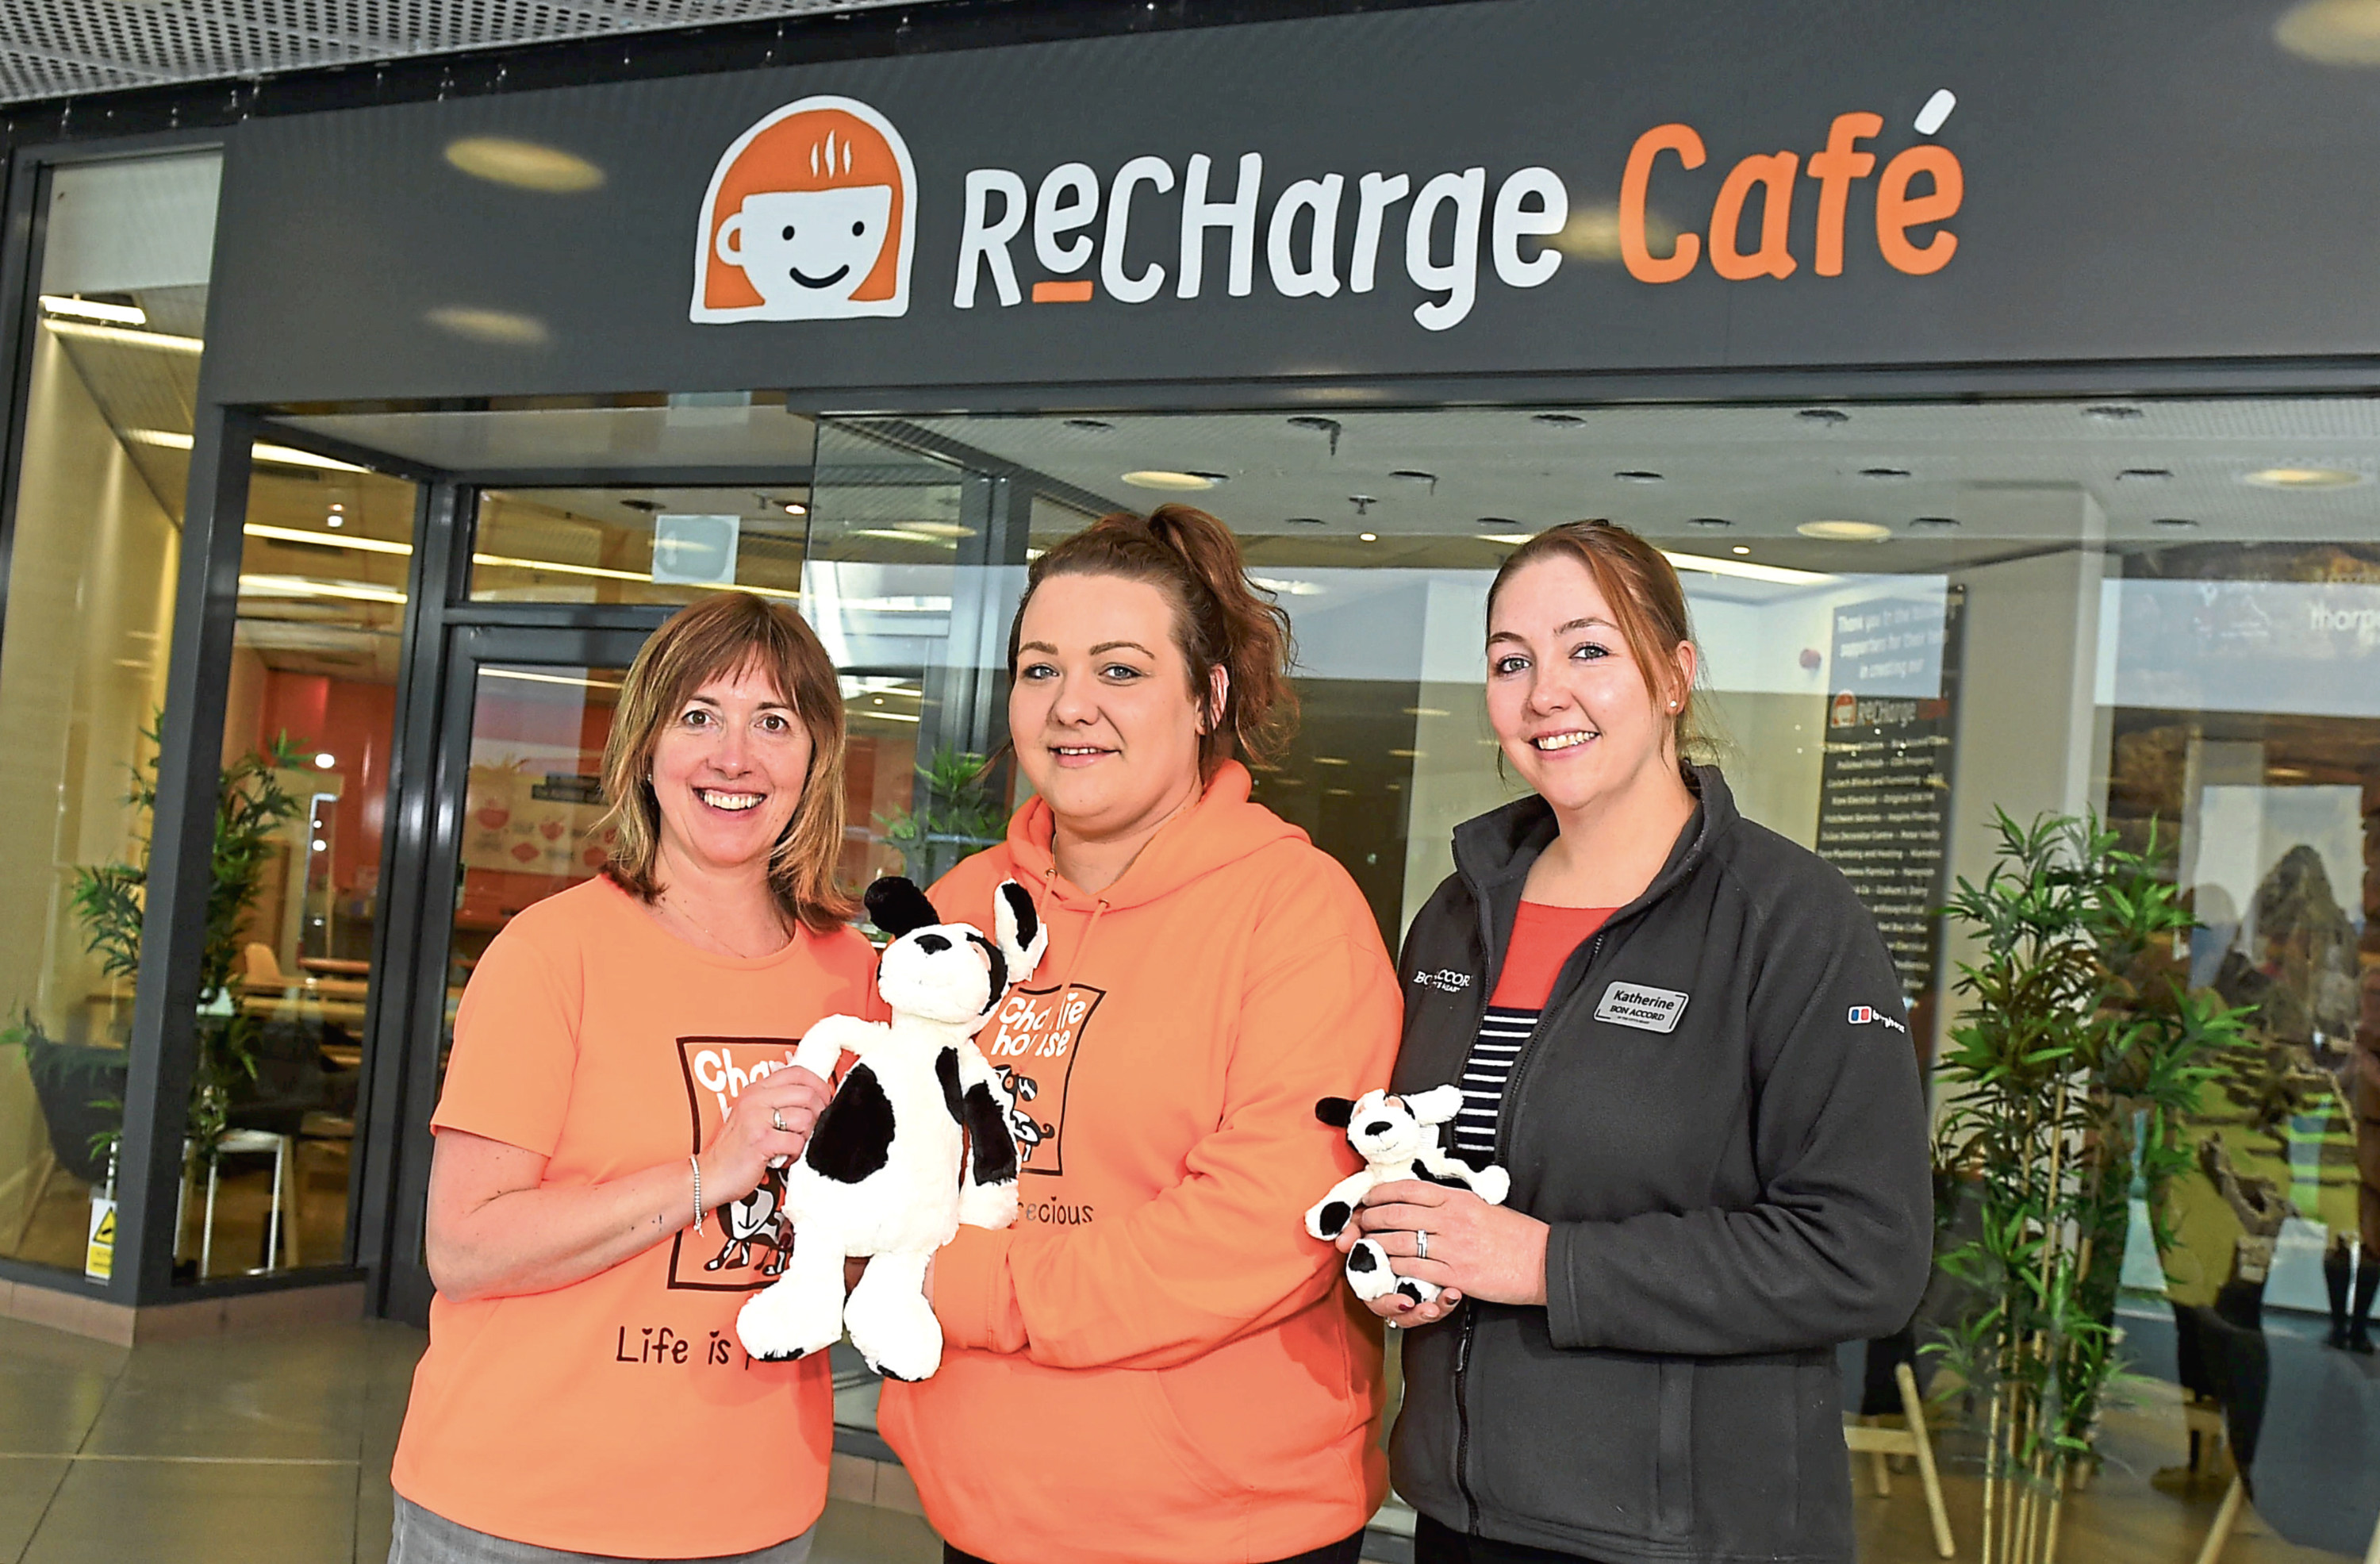 From left, Susan Crighton, Laura Yeats and Katherine Williams at ReCHarge cafe